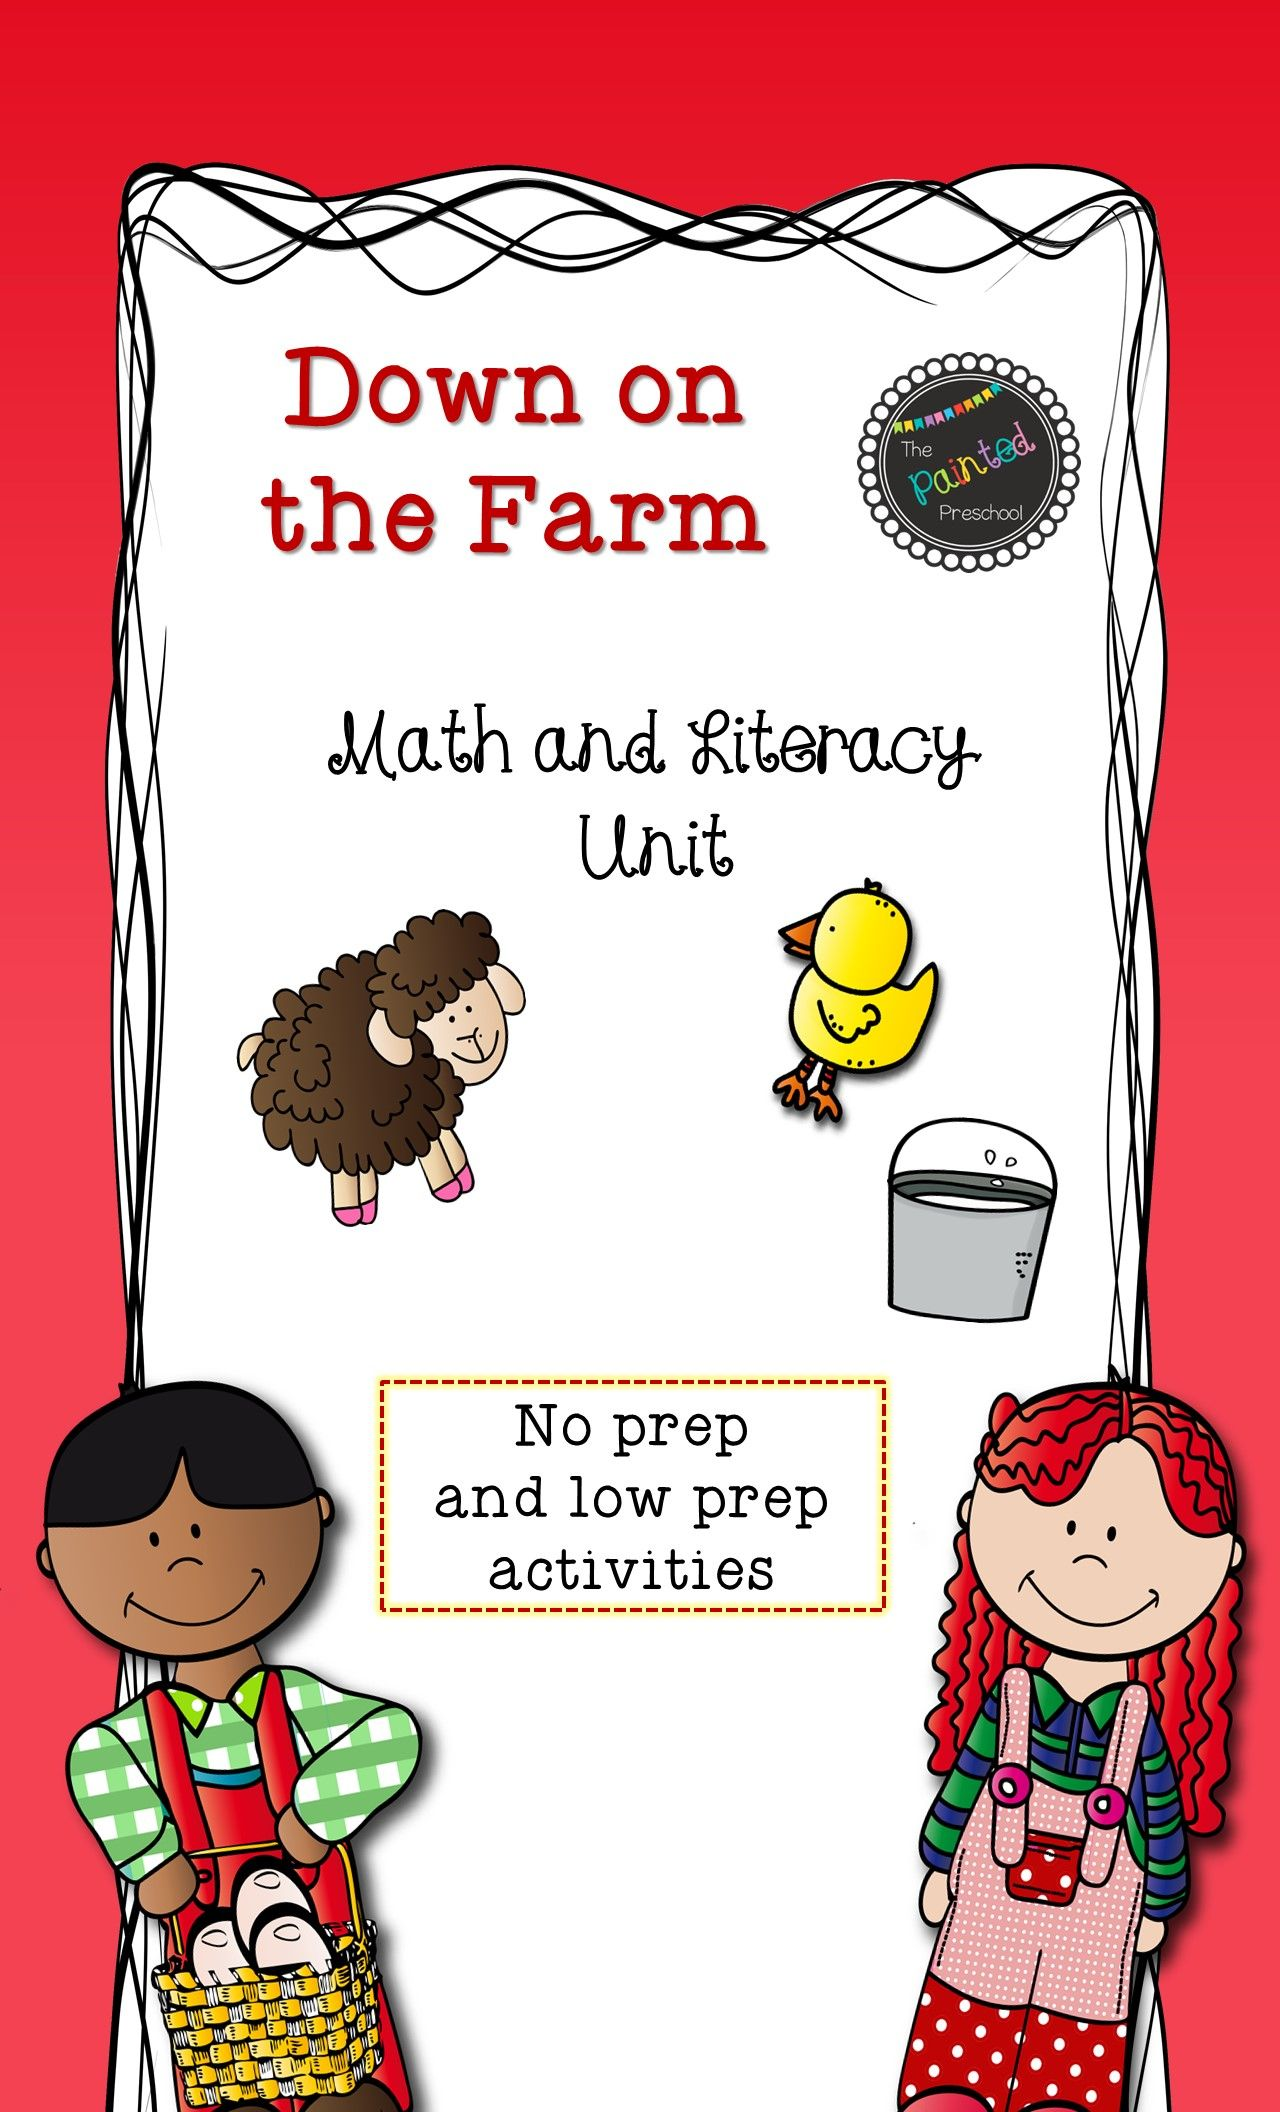 This Is A Farm Unit With Math And Literacy Activities And